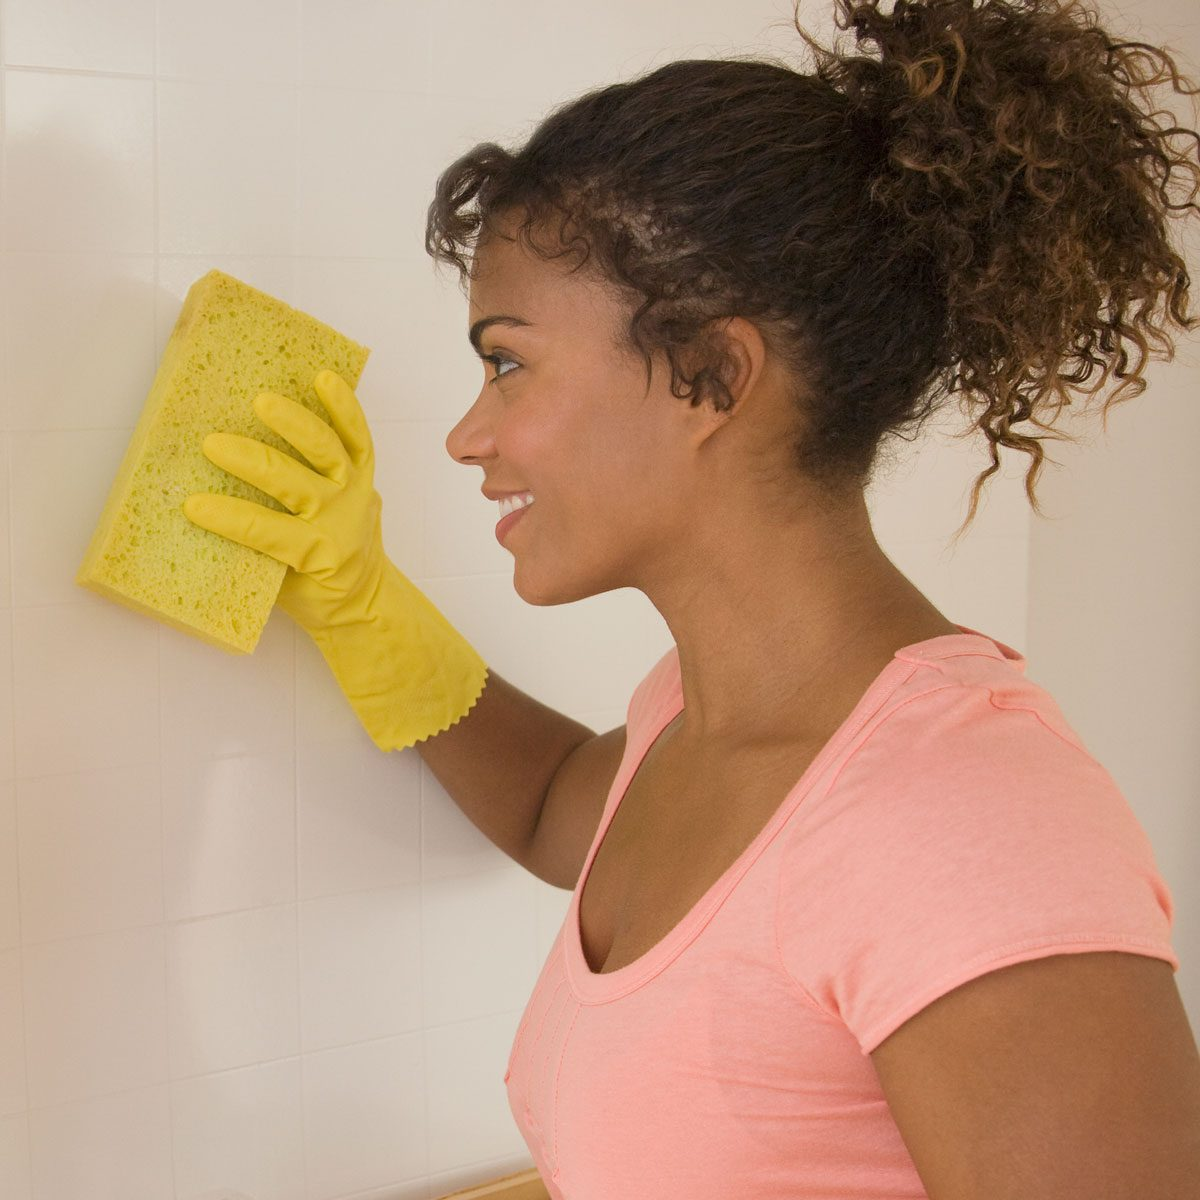 Prep by washing Walls Gettyimages 80284072